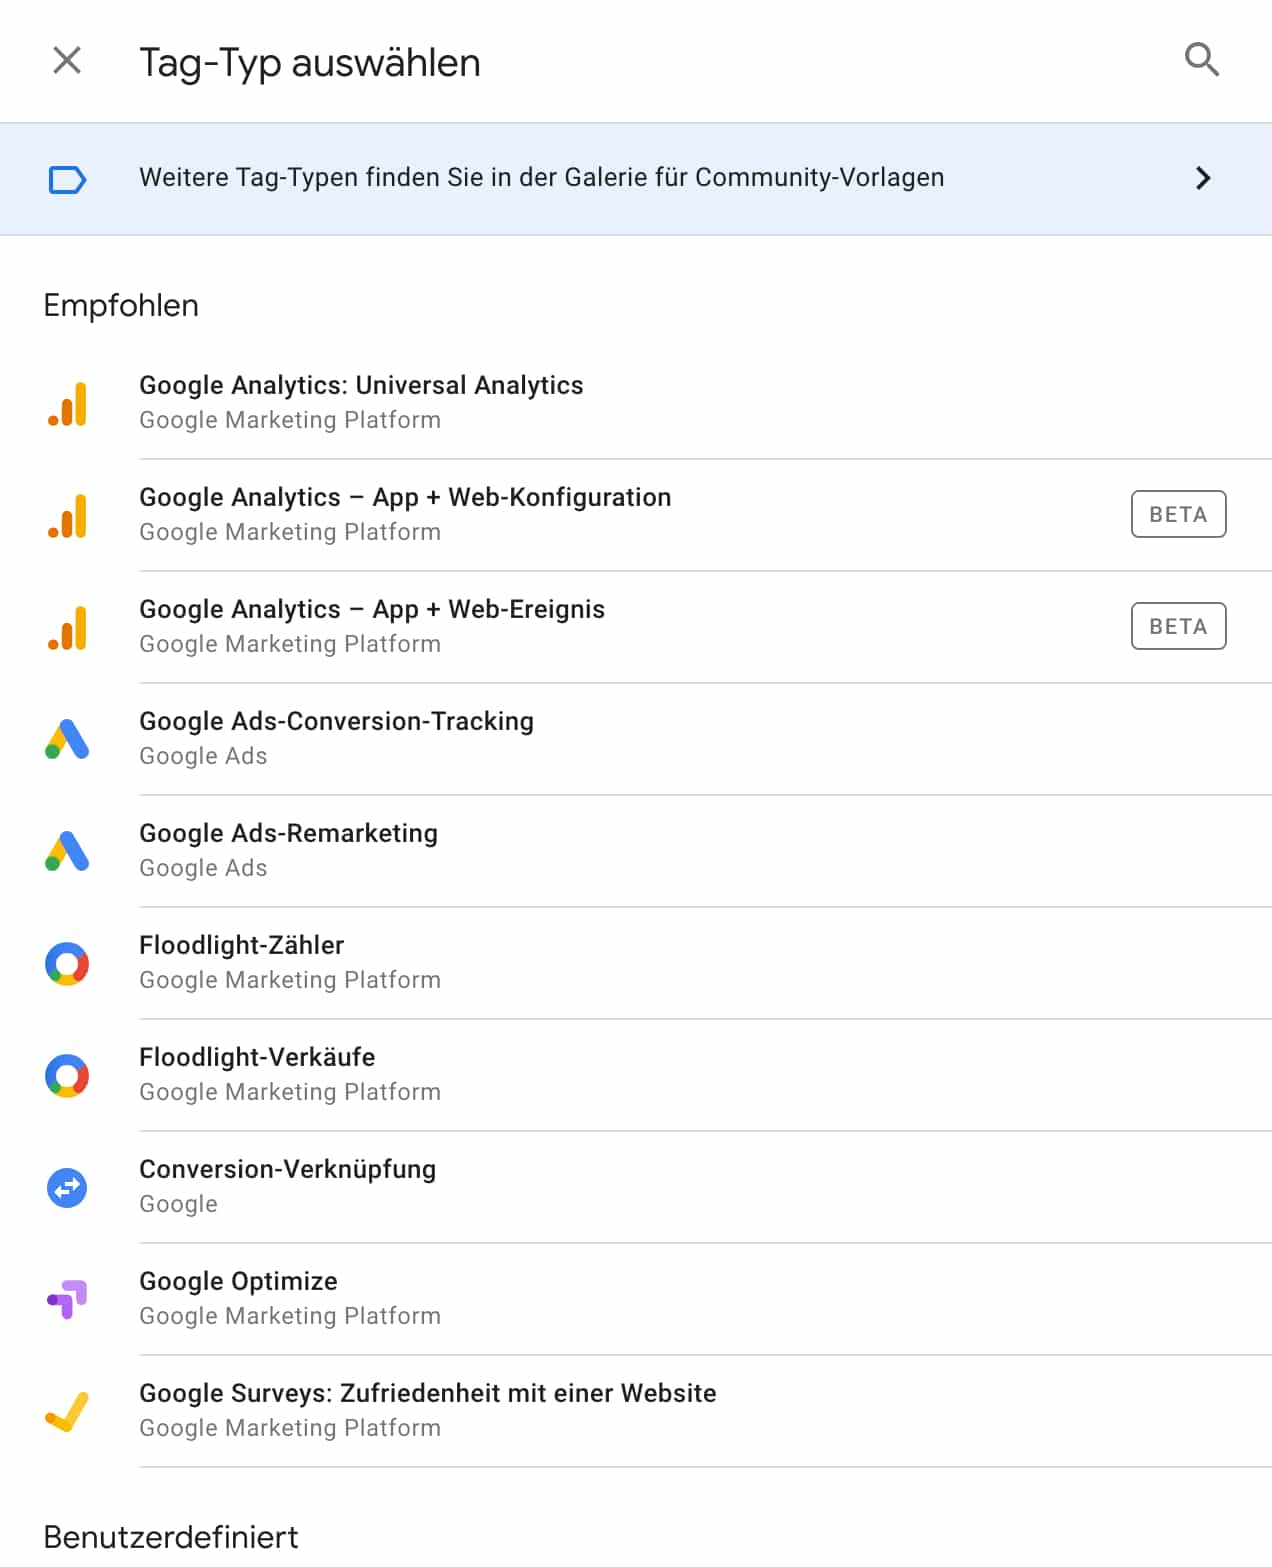 Google Tag Manager Tag Typ auswählen